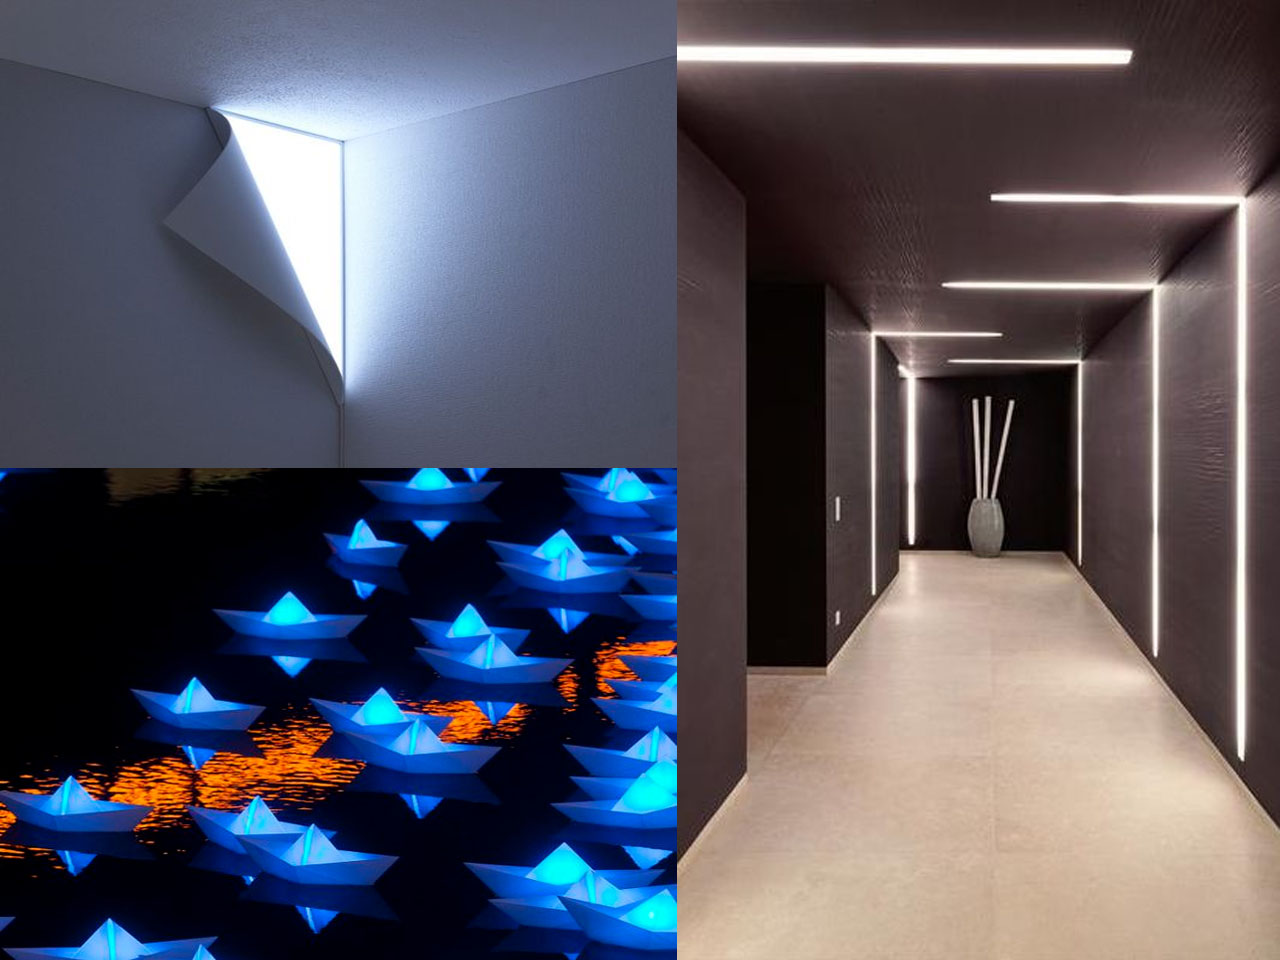 Descubre la decoraci n con luces led y todas sus ventajas - Decoracion con luces ...